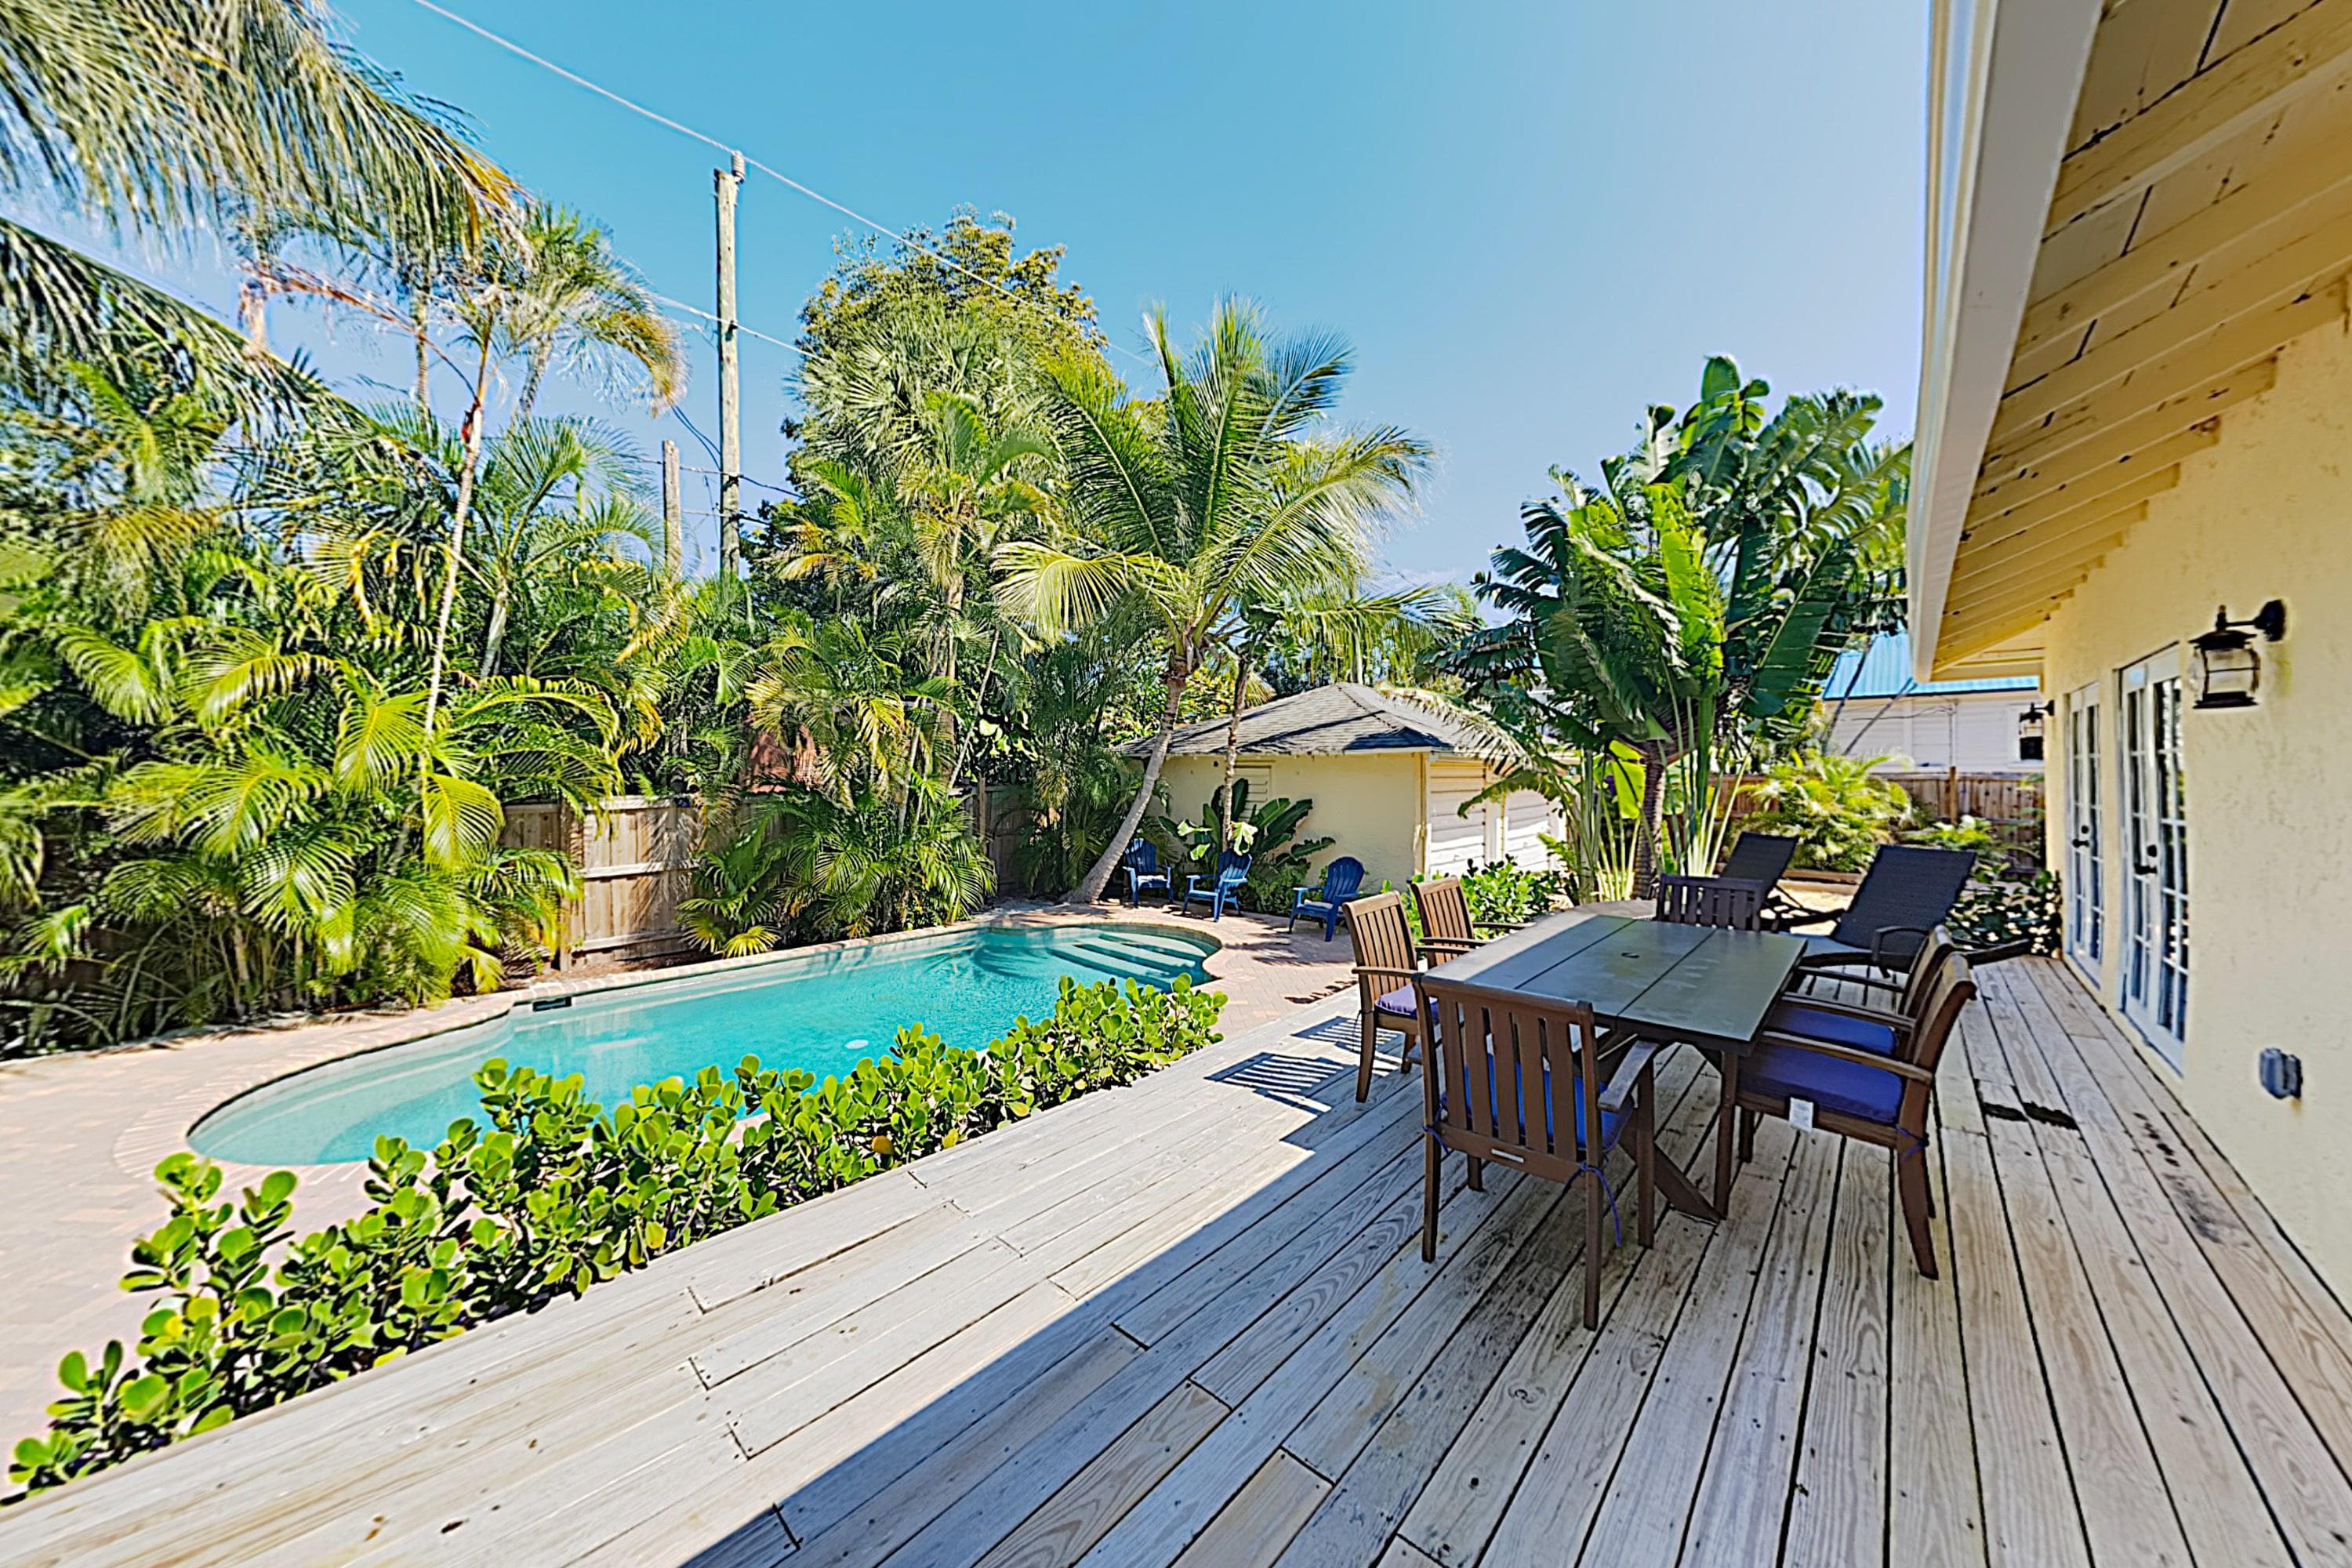 Welcome to West Palm Beach! This home is professionally managed by TurnKey Vacation Rentals.